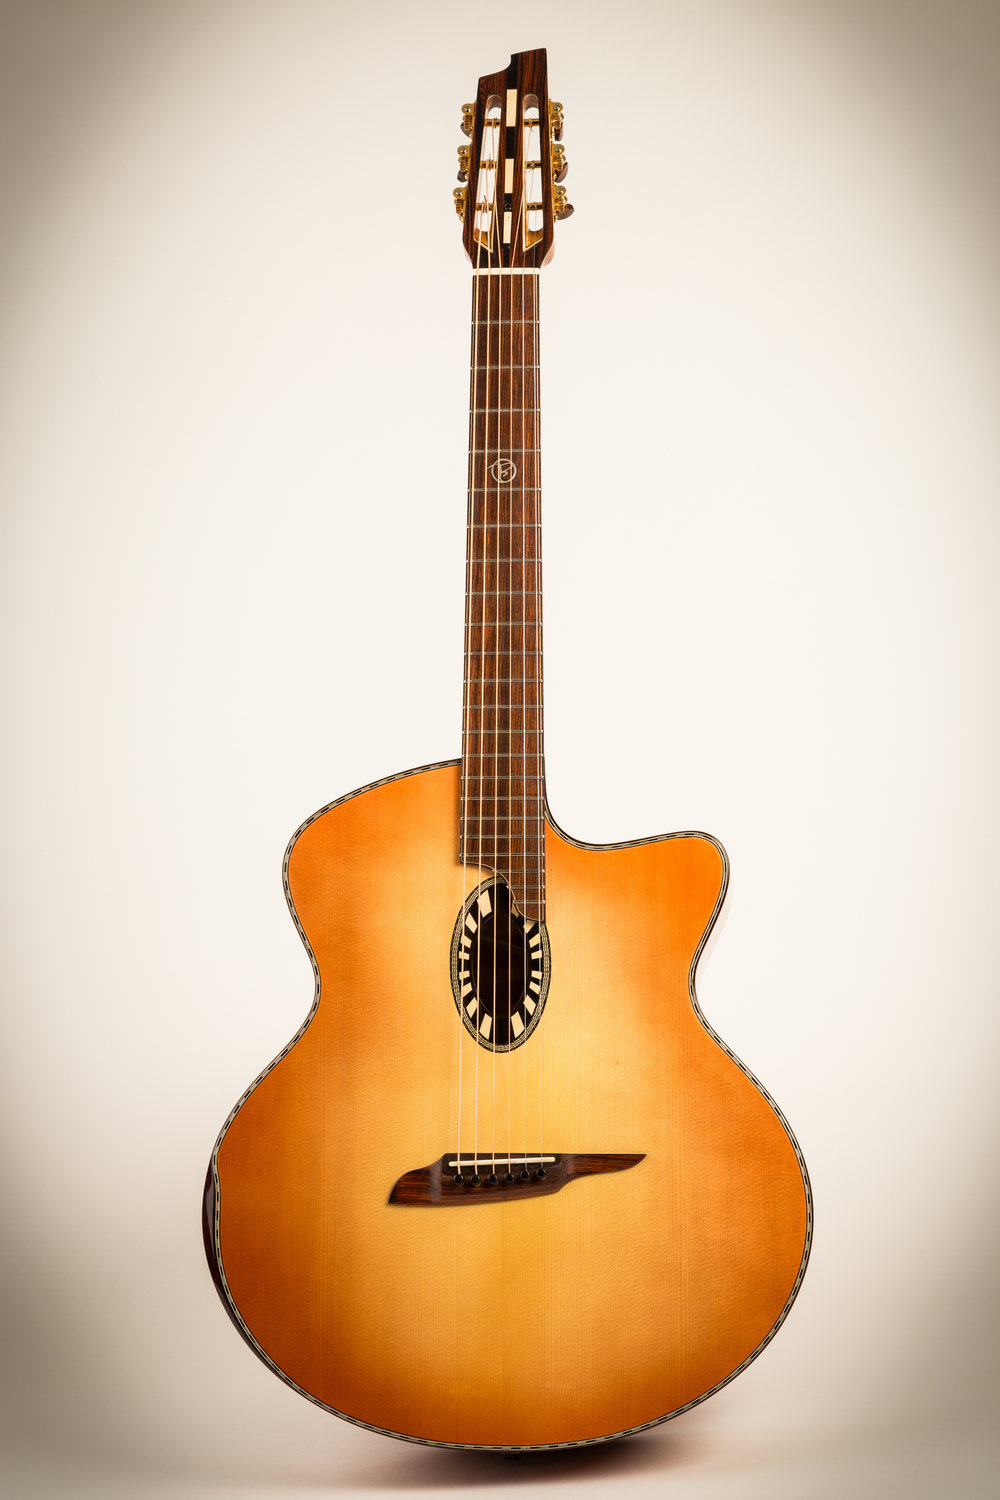 4G-M with sunburst top, slotted headscock, and exceptional curly maple back/sides